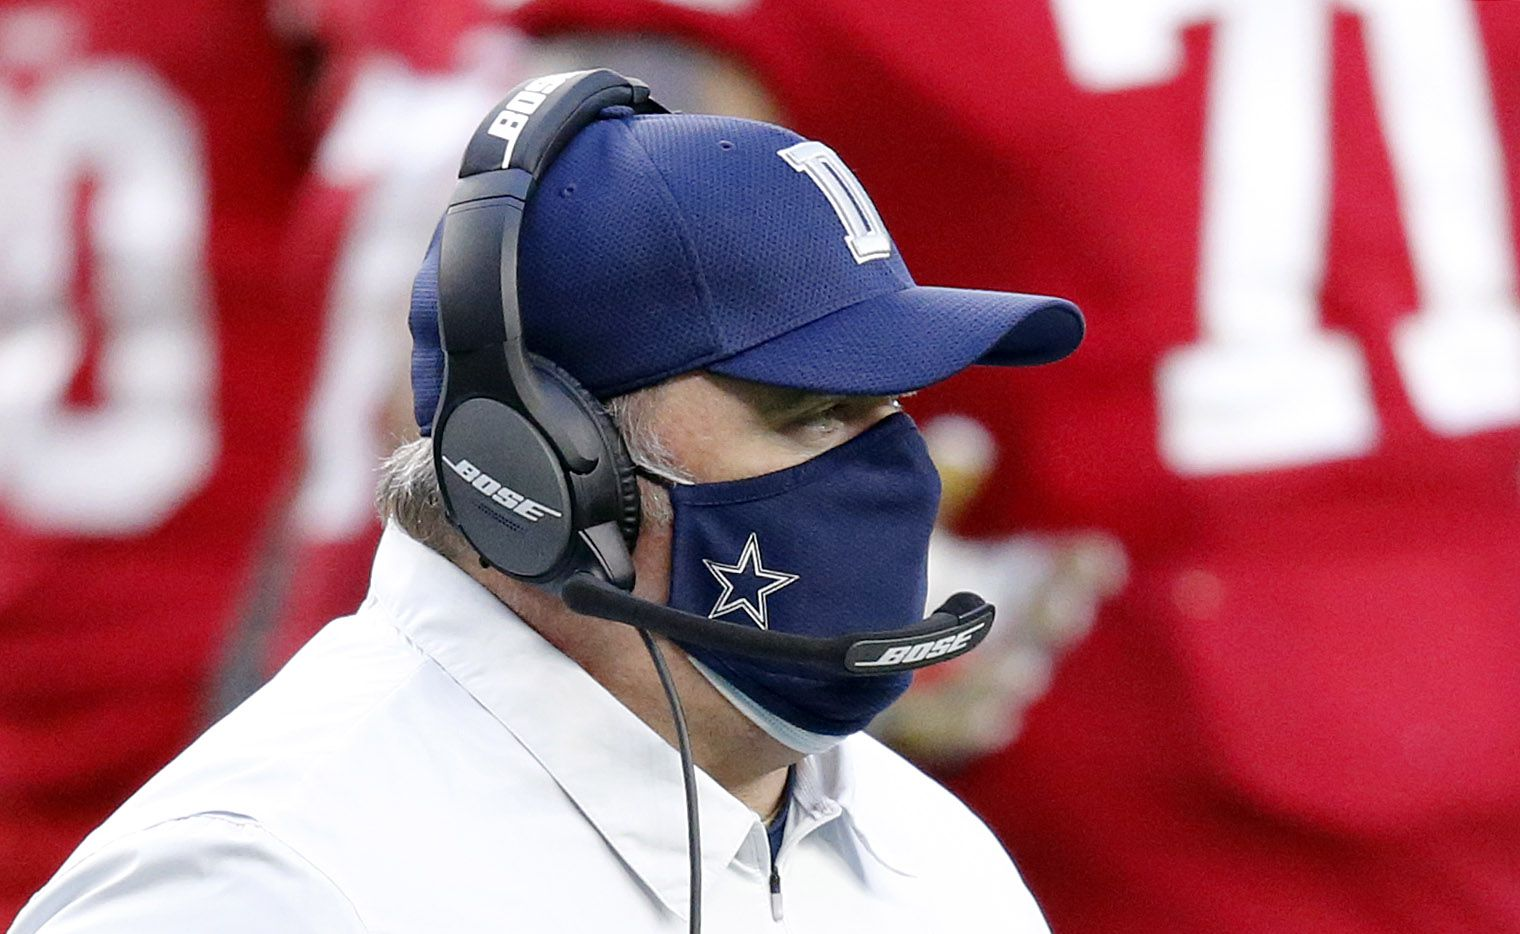 Dallas Cowboys head coach Mike McCarthy walks back to the sideline following a players injury in the second quarter against the San Francisco 49ers at AT&T Stadium in Arlington, Texas, Sunday, December 20, 2020.